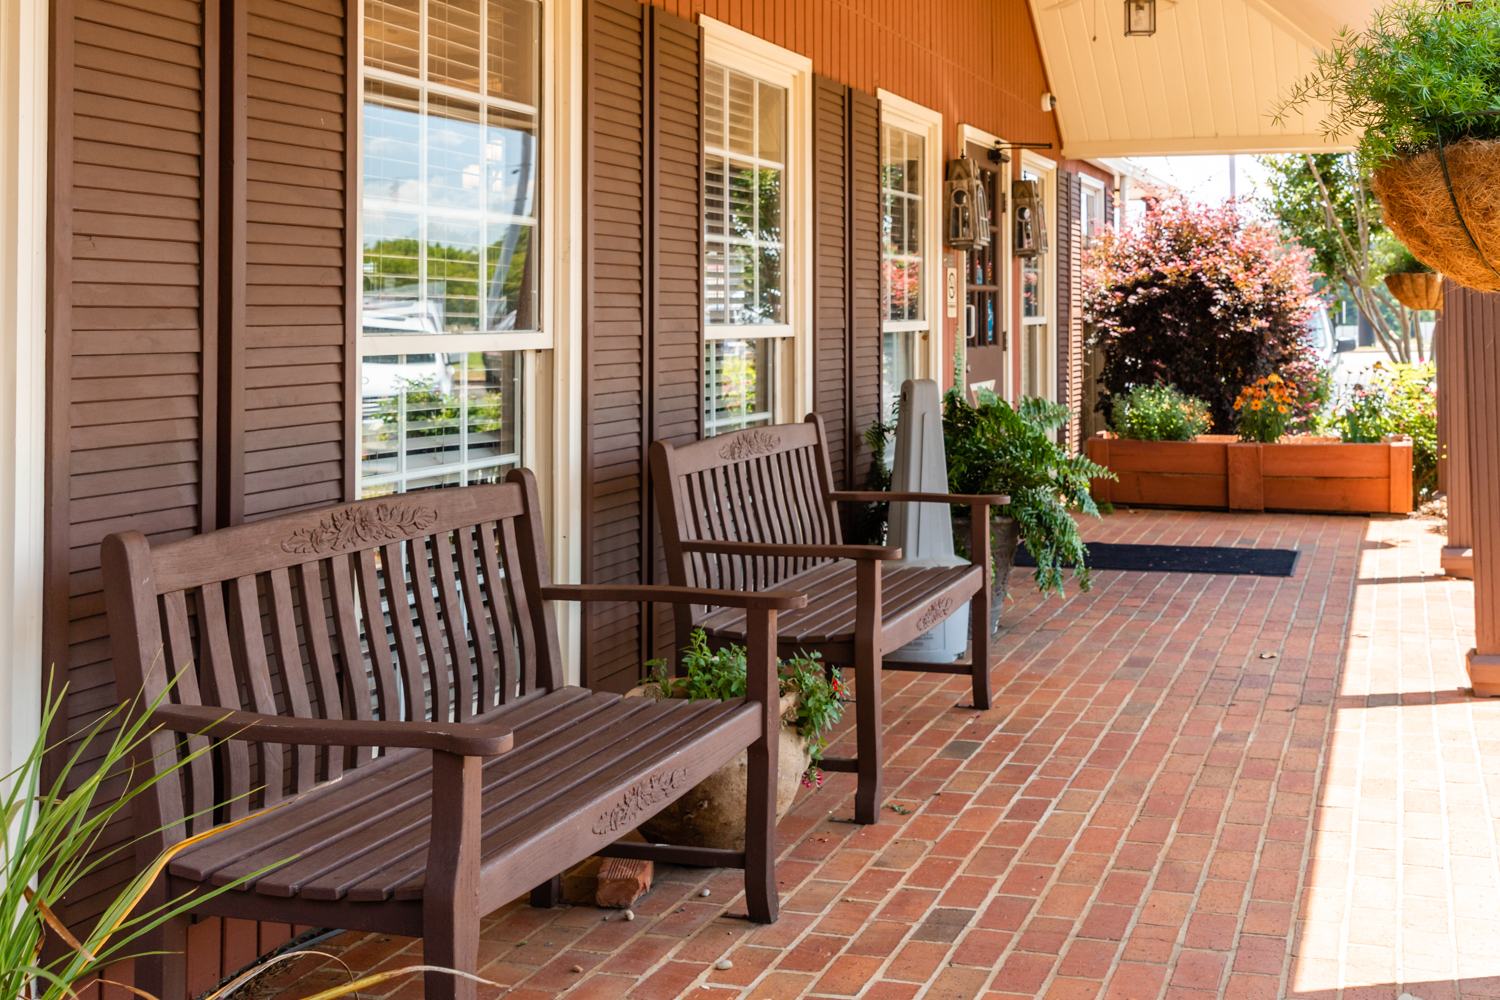 Front porch with benches outside of restaurant entrance.